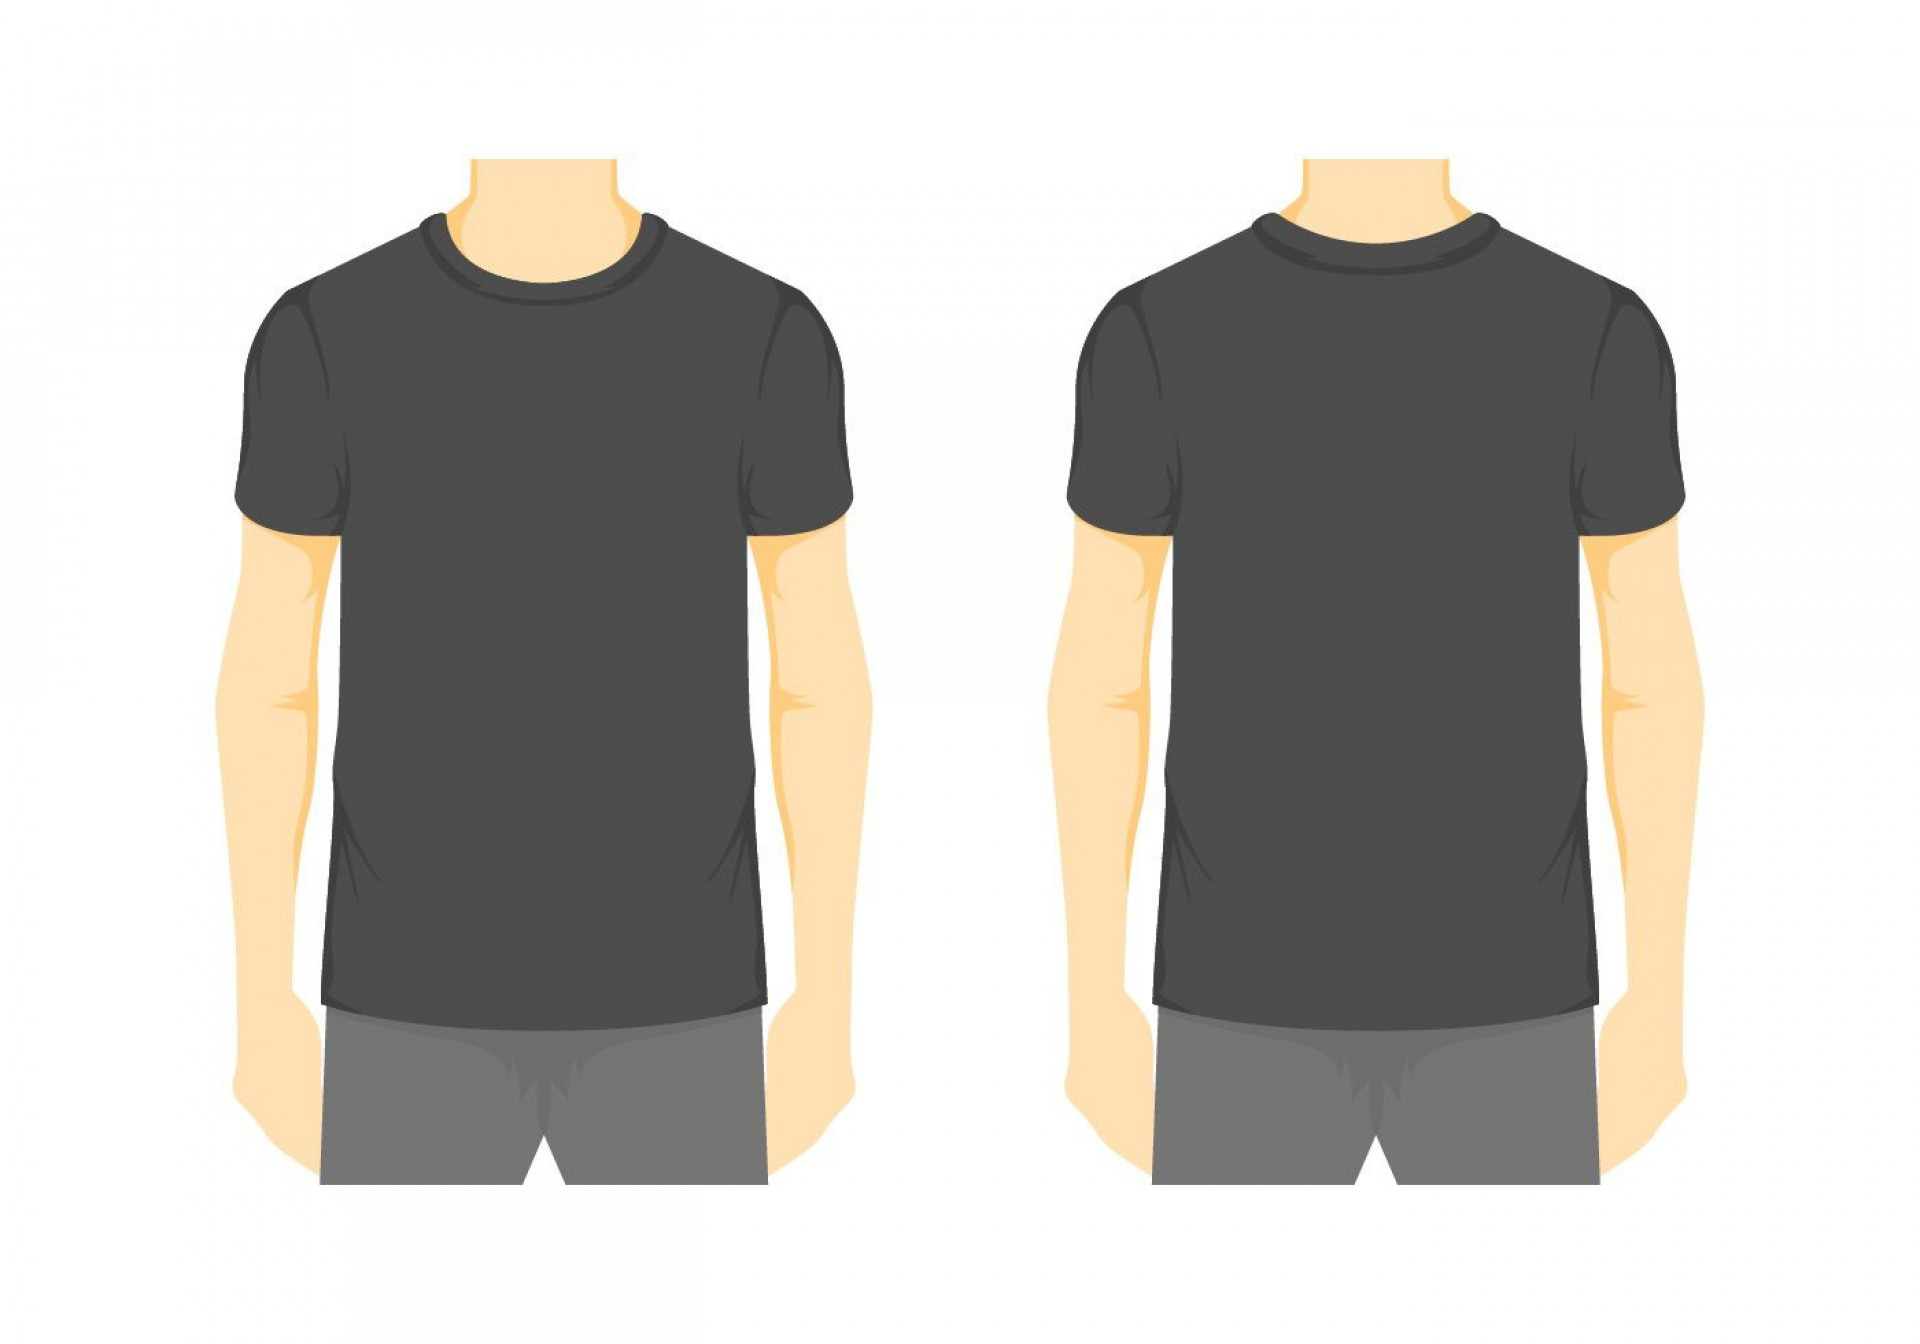 008 Stirring Blank Tee Shirt Template Example  T Design Pdf Free T-shirt Front And Back Download1920